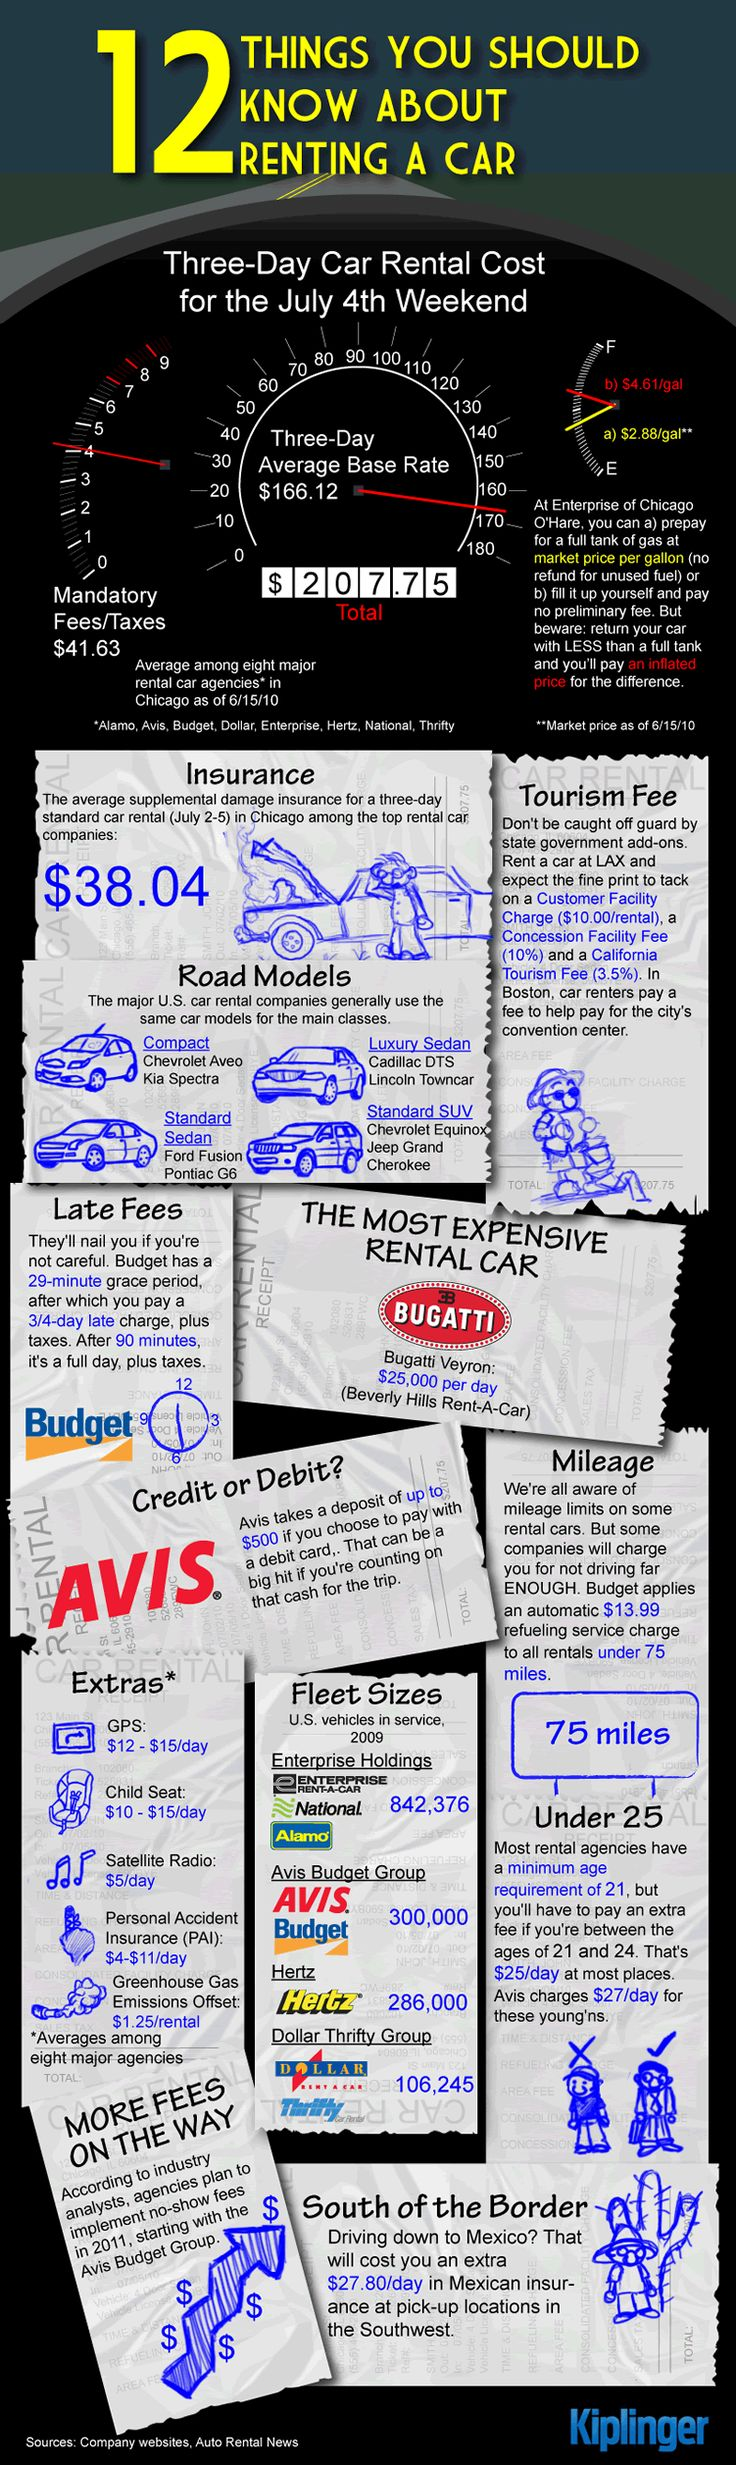 12 Things You Should Know About Renting A Car https://www.youtube.com/watch?v=9lFfnsZp3fk